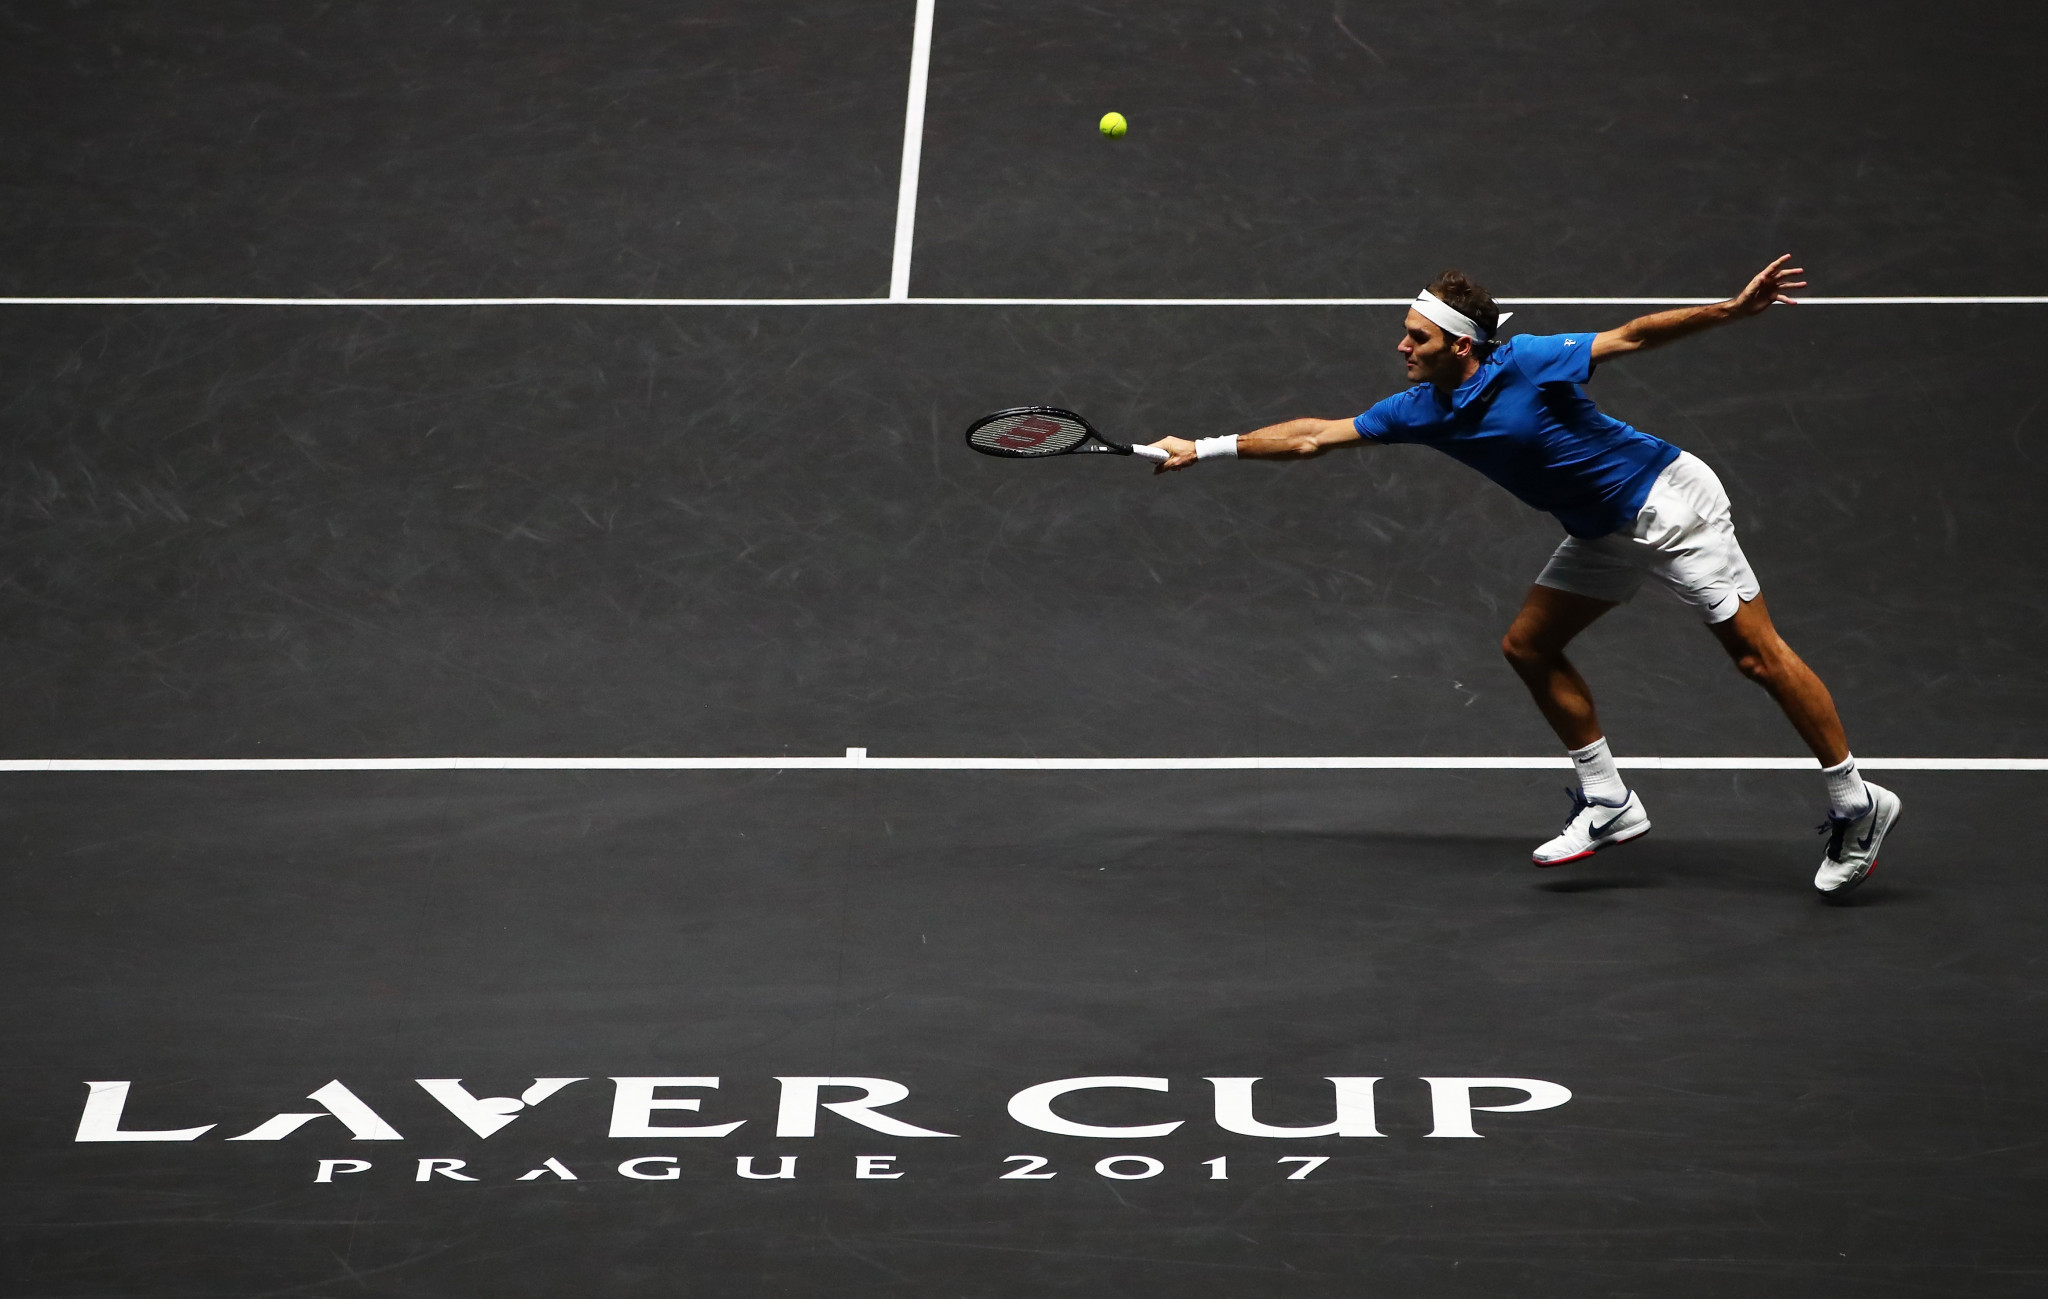 Roger Federer sealed the decisive victory as Europe won the Laver Cup ©Getty Images